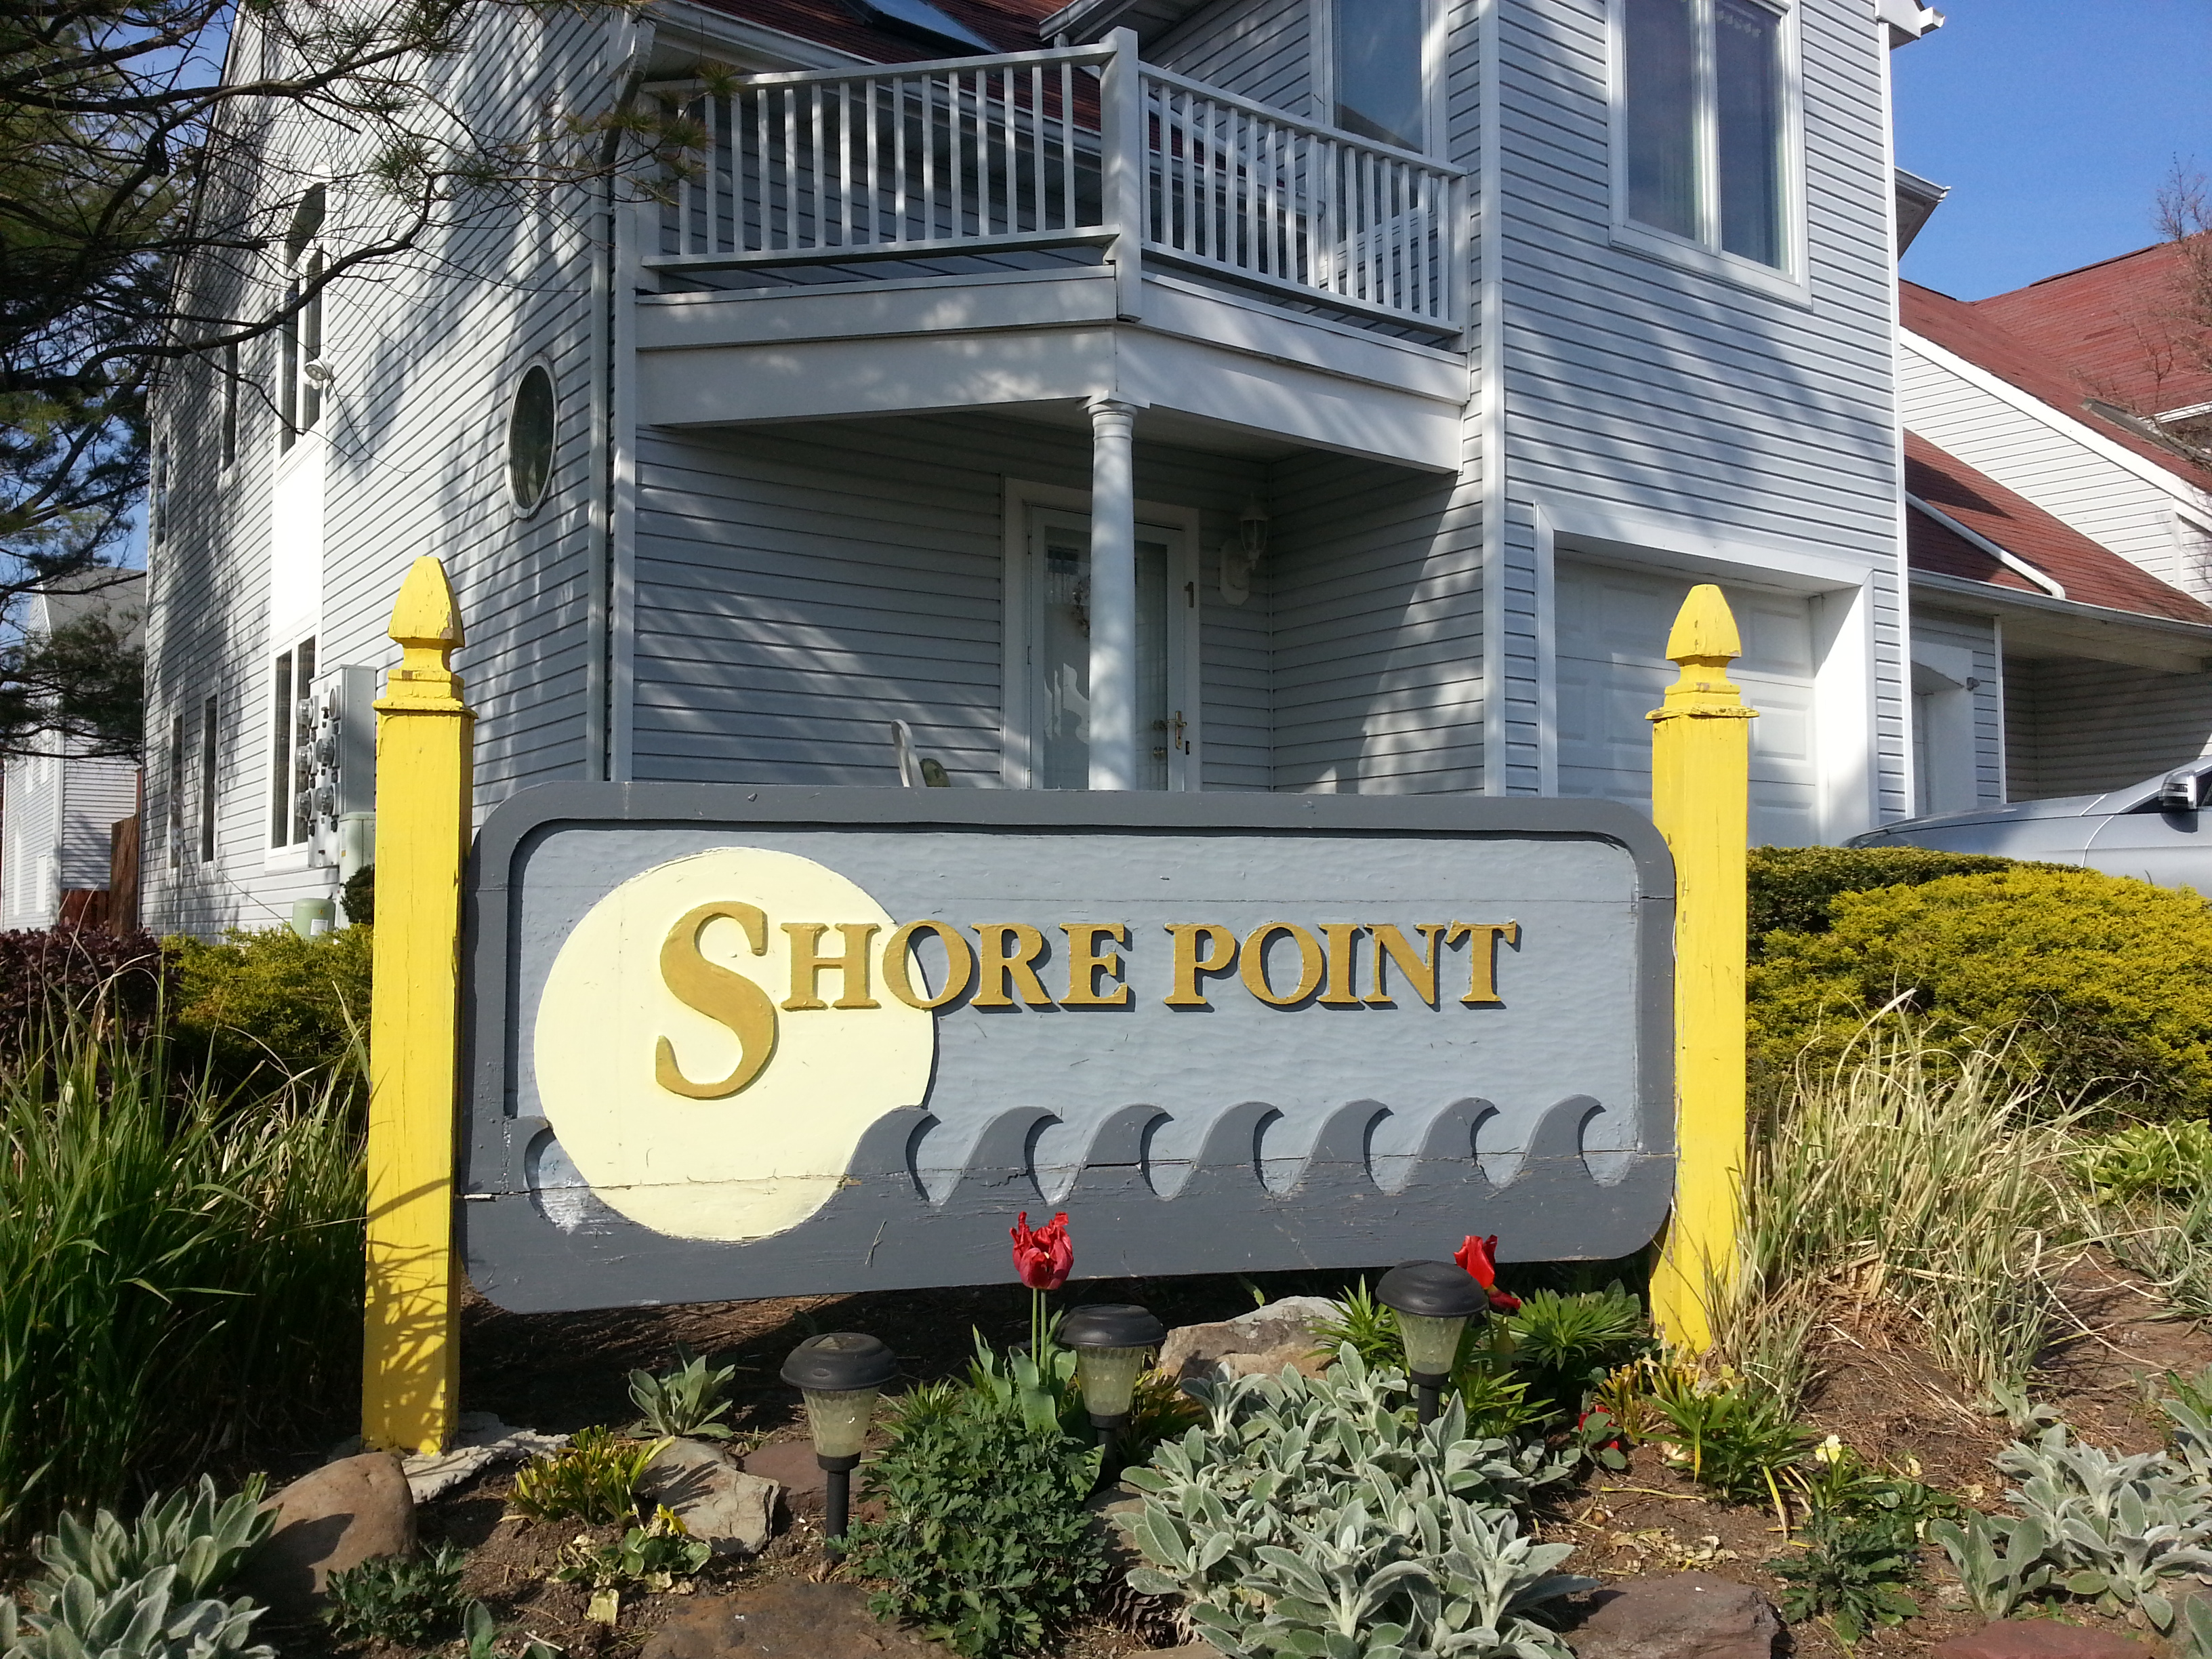 Shore Point Courts, located on Bayview Ct. off of Patten Ave, is in the North End of Long Branch